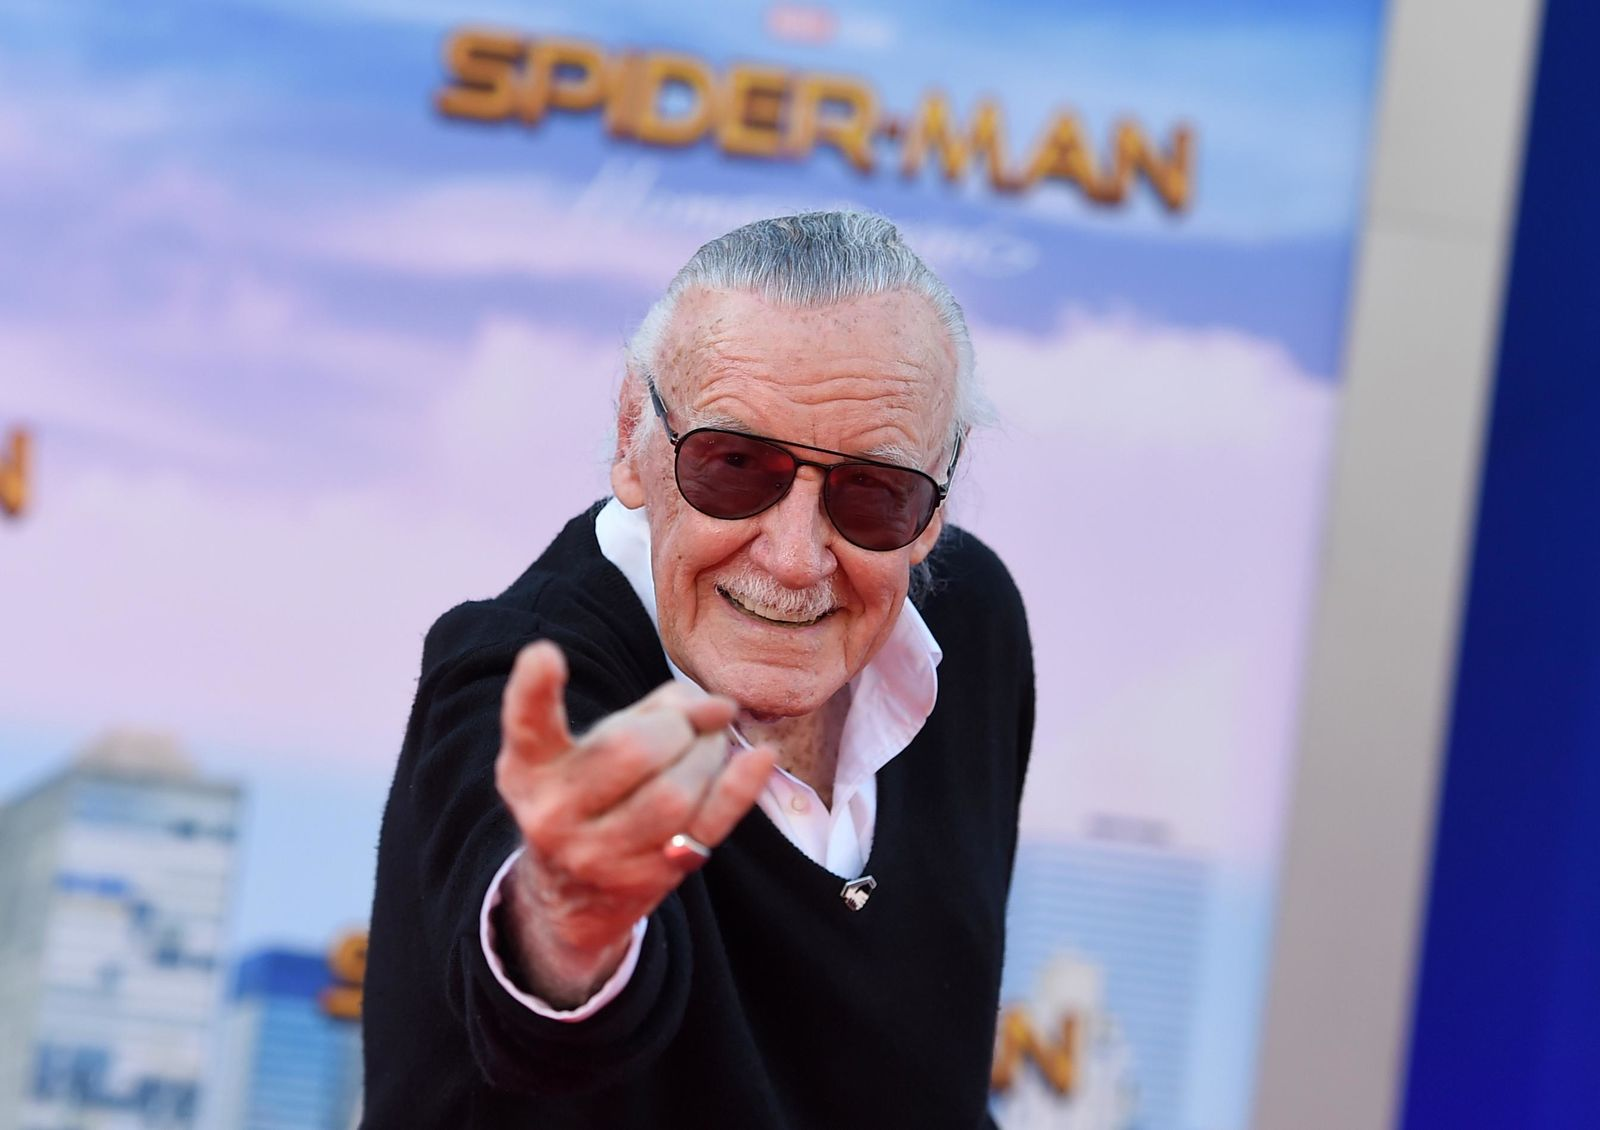 "FILE - In this June 28, 2017 file photo, Stan Lee arrives at the Los Angeles premiere of ""Spider-Man: Homecoming"" at the TCL Chinese Theatre. For comics lovers, Lee was as much a superhero as the characters he helped create. Those fans, along with Lee's friends and colleagues, will get to pay their final respects at a Hollywood memorial Wednesday, Jan. 30, 2019, for the Marvel Comics mastermind who helped bring the world Spider-Man, Black Panther and The Incredible Hulk. (Photo by Jordan Strauss/Invision/AP, File)"